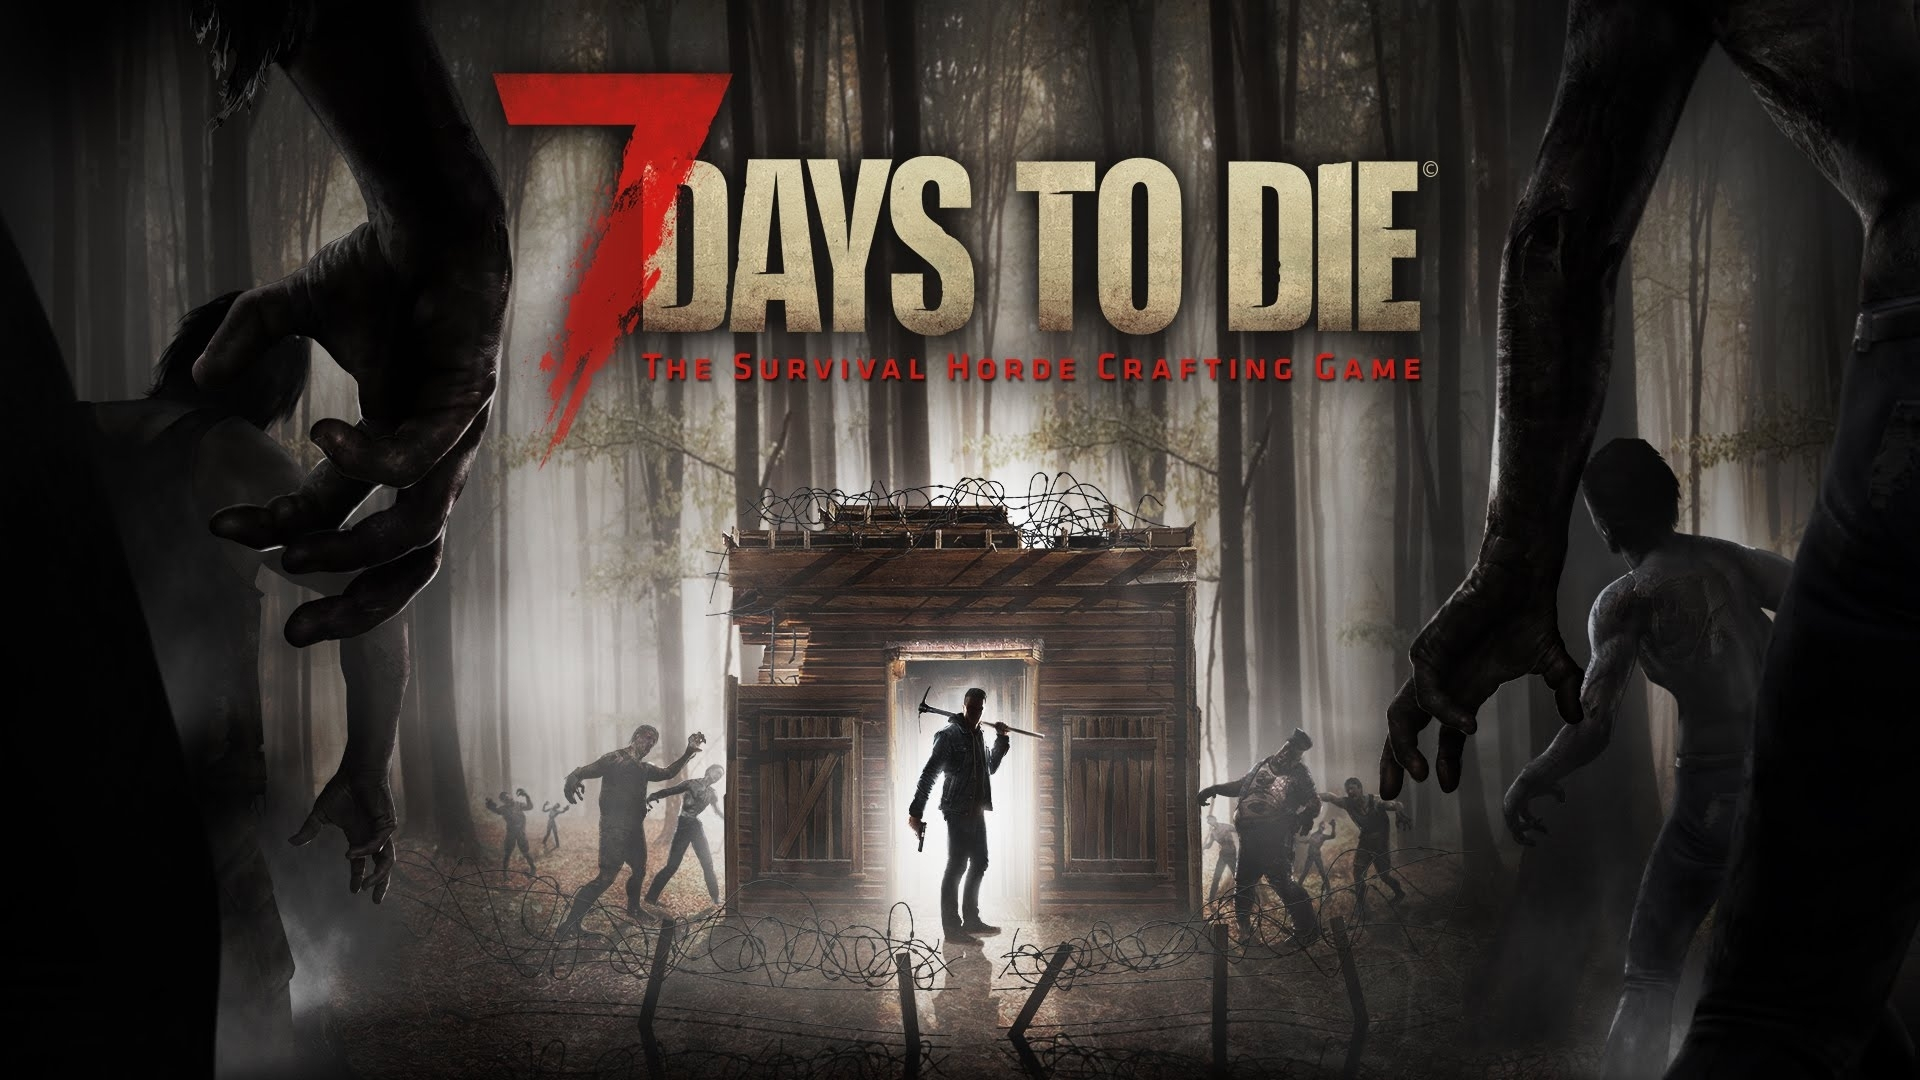 9 7 days to die hd wallpapers | background images - wallpaper abyss